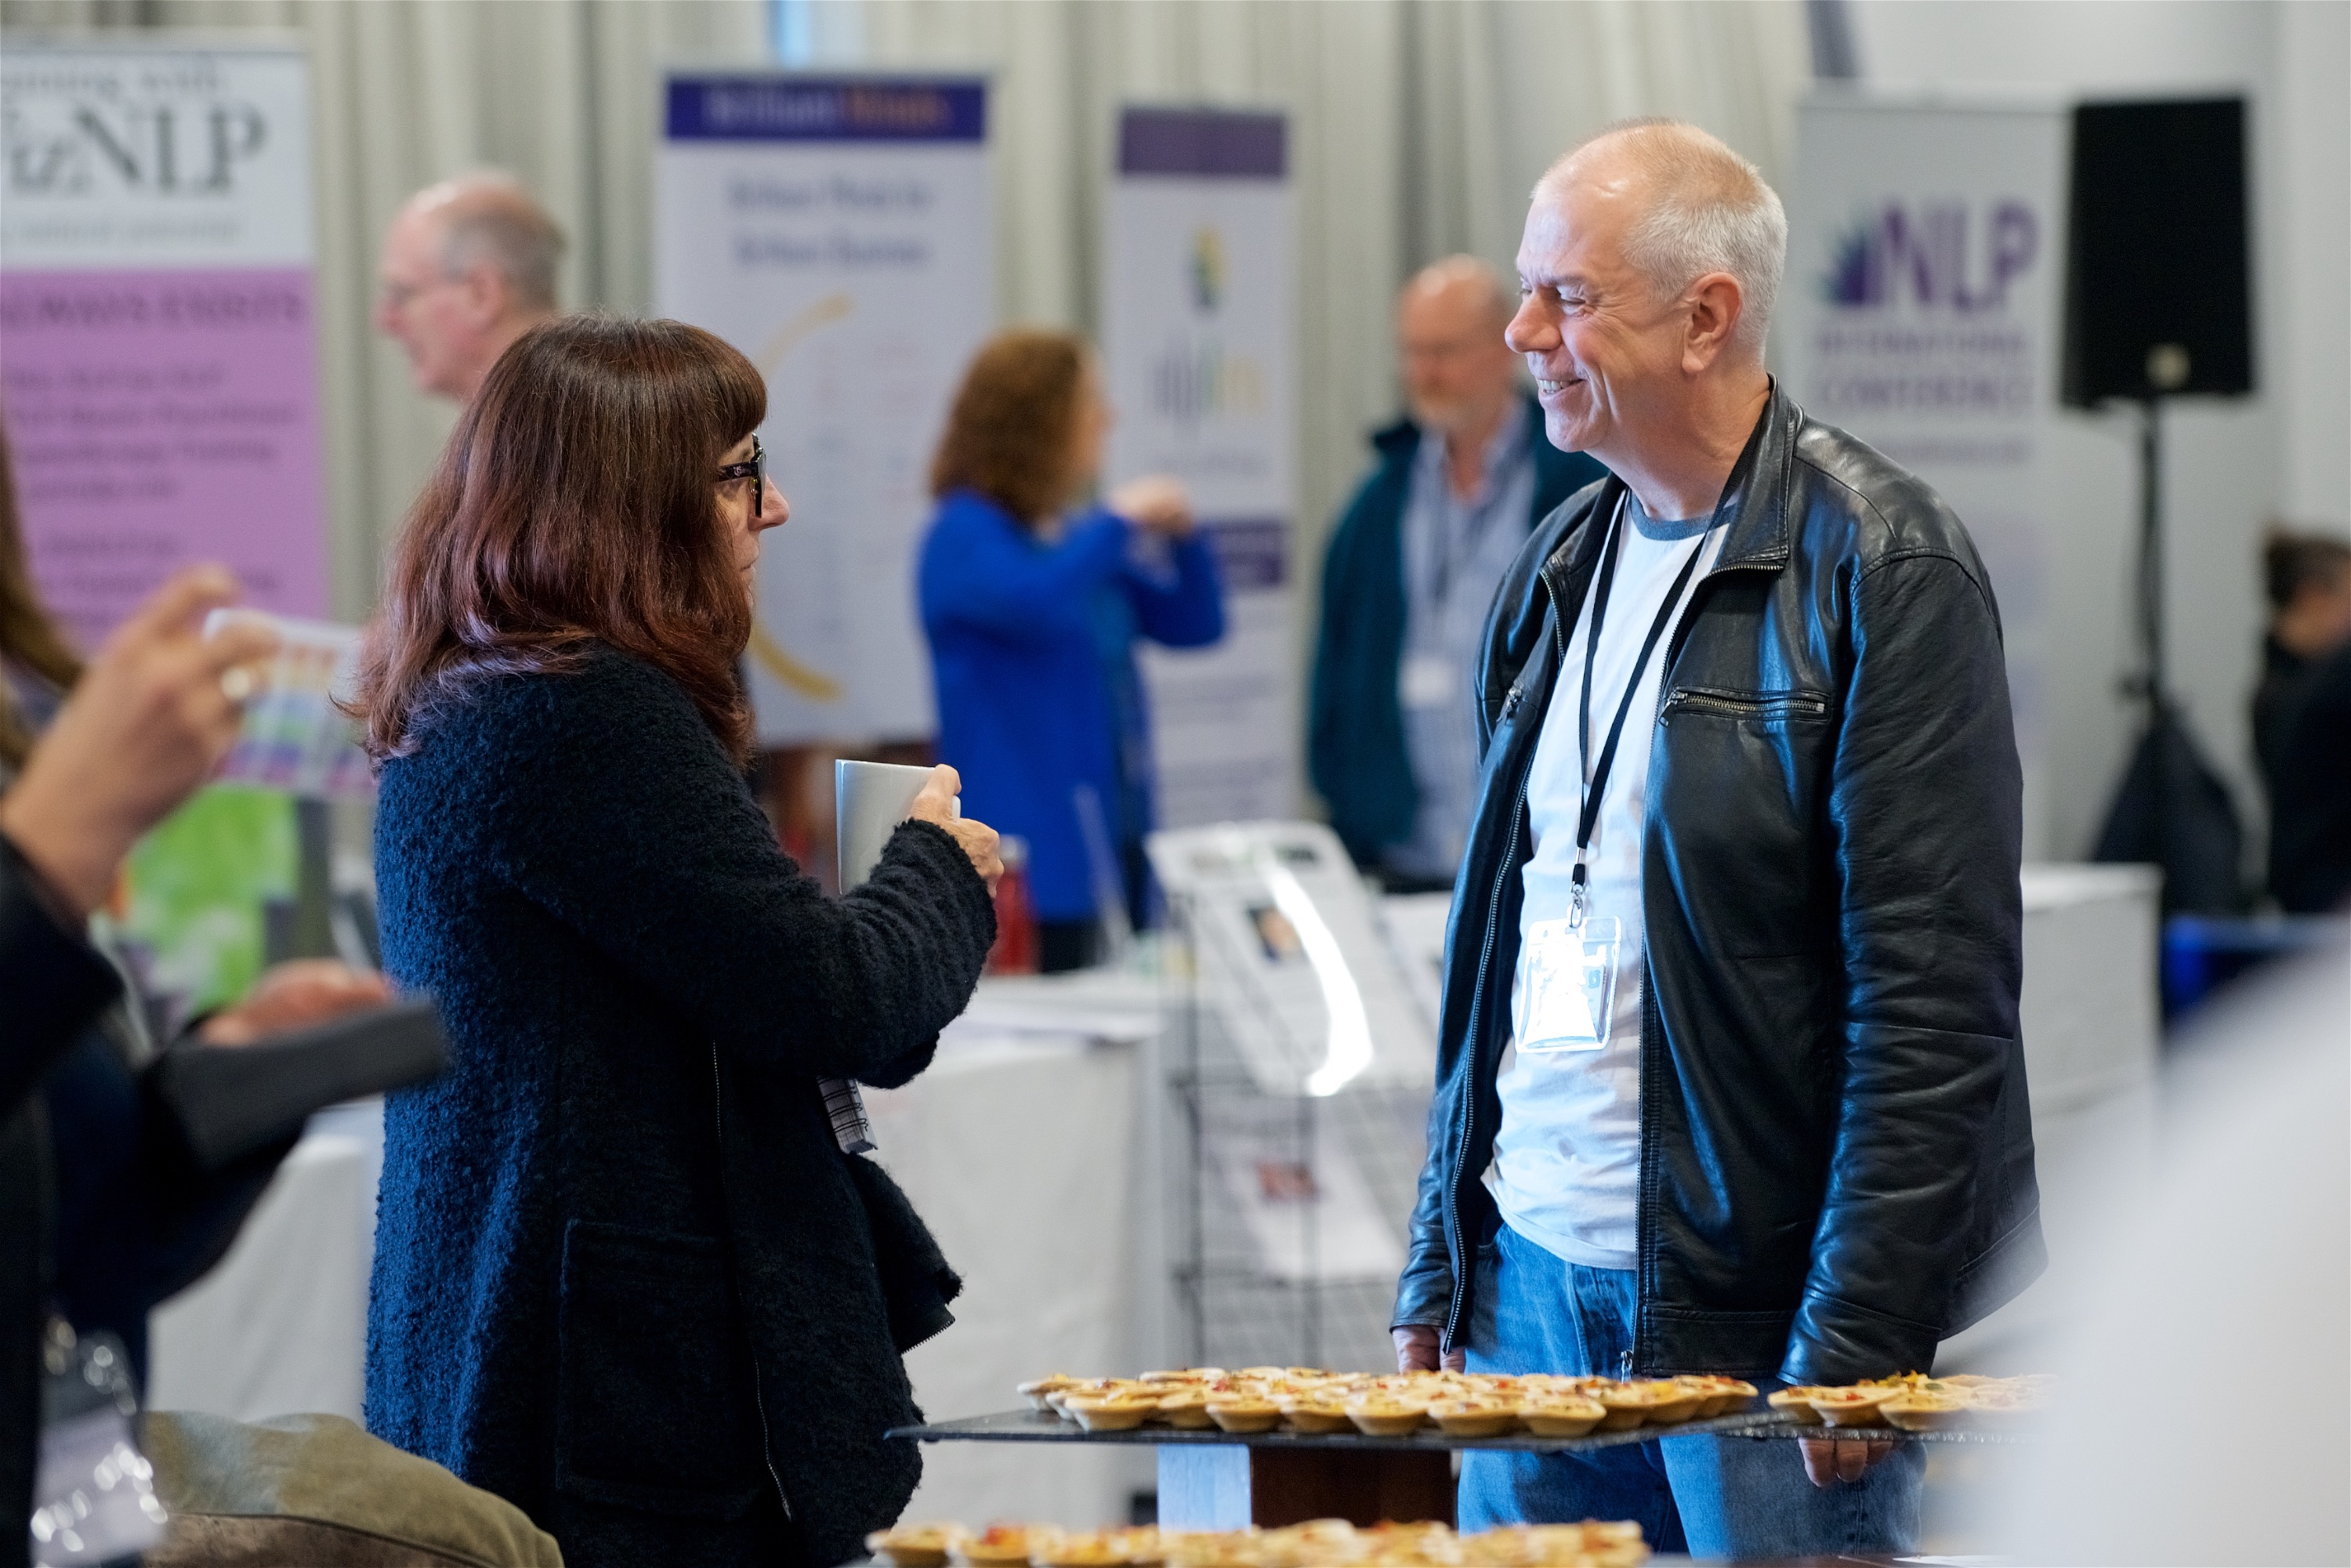 Chatting at NLP Conference